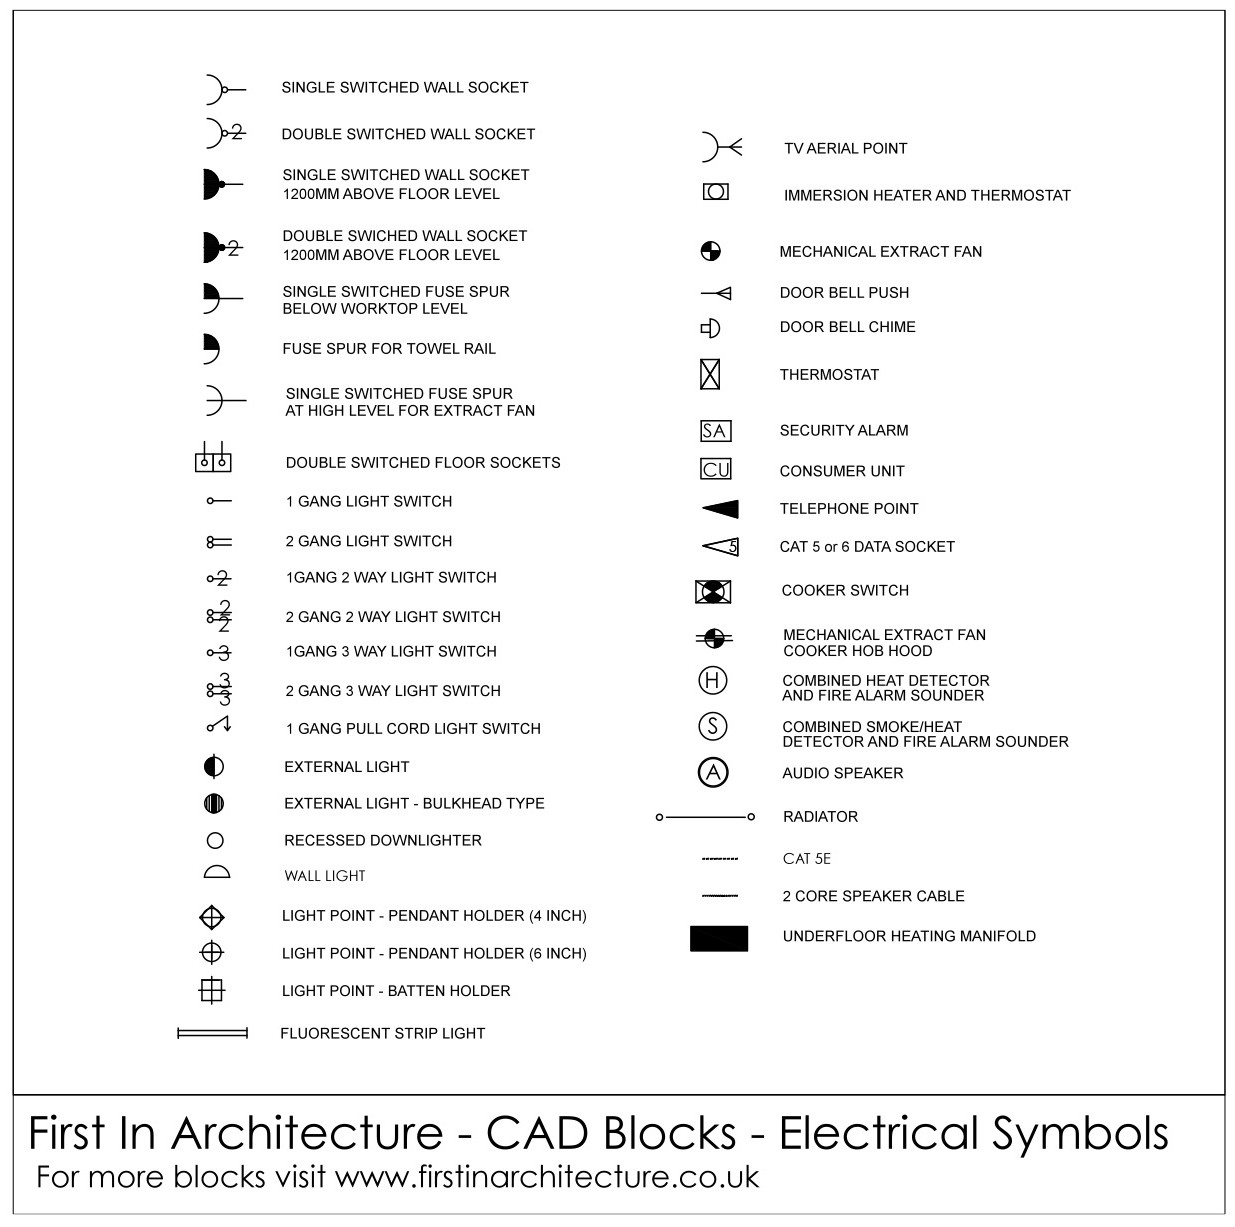 Free cad blocks electrical symbols first in architecture malvernweather Gallery